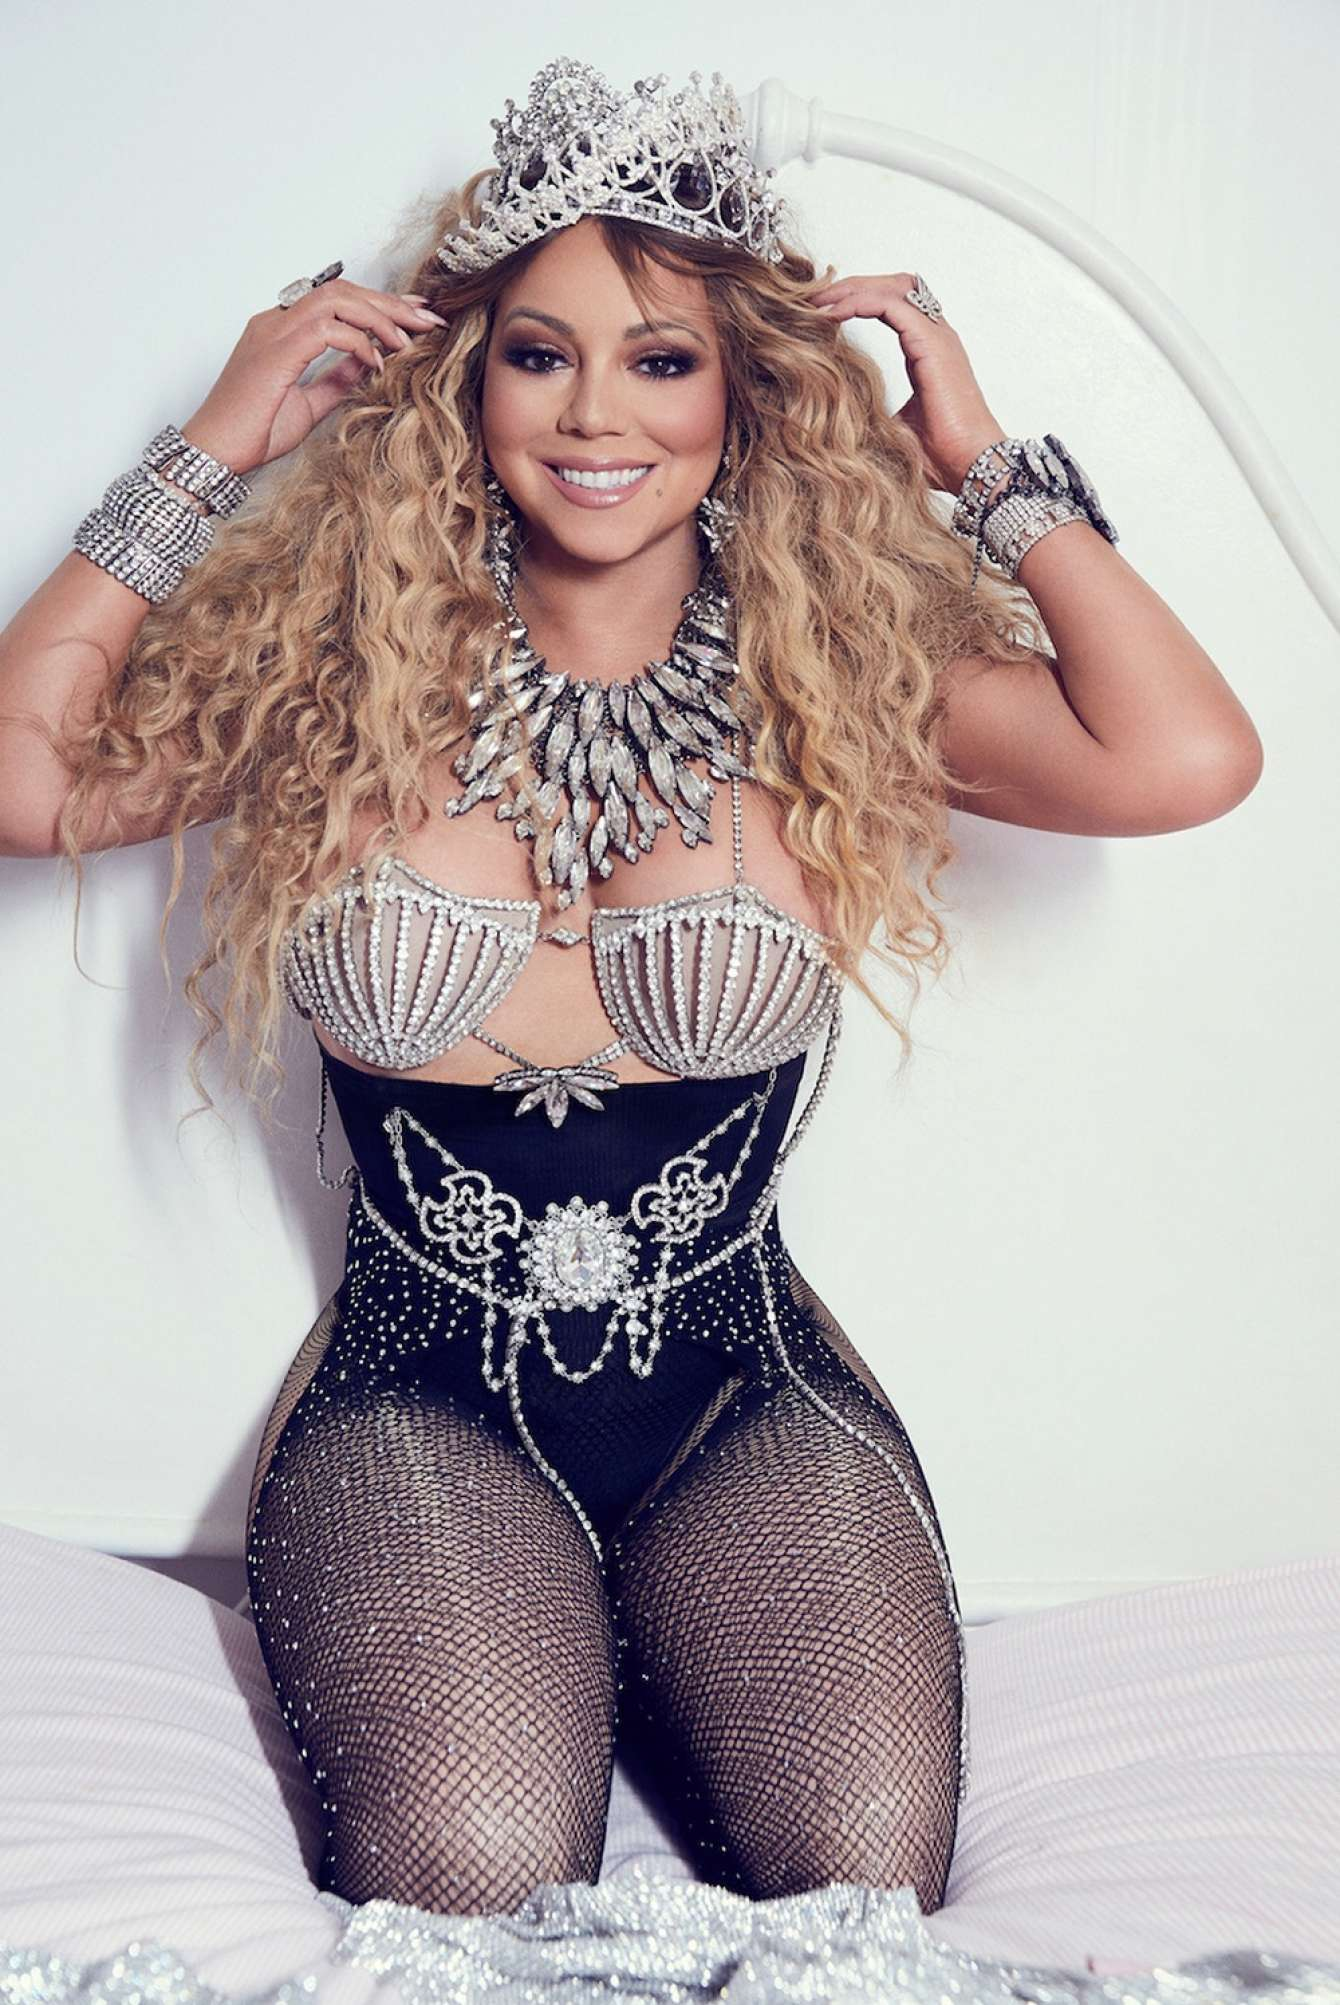 Mariah Carey Paper Mag Photoshoot By James White August